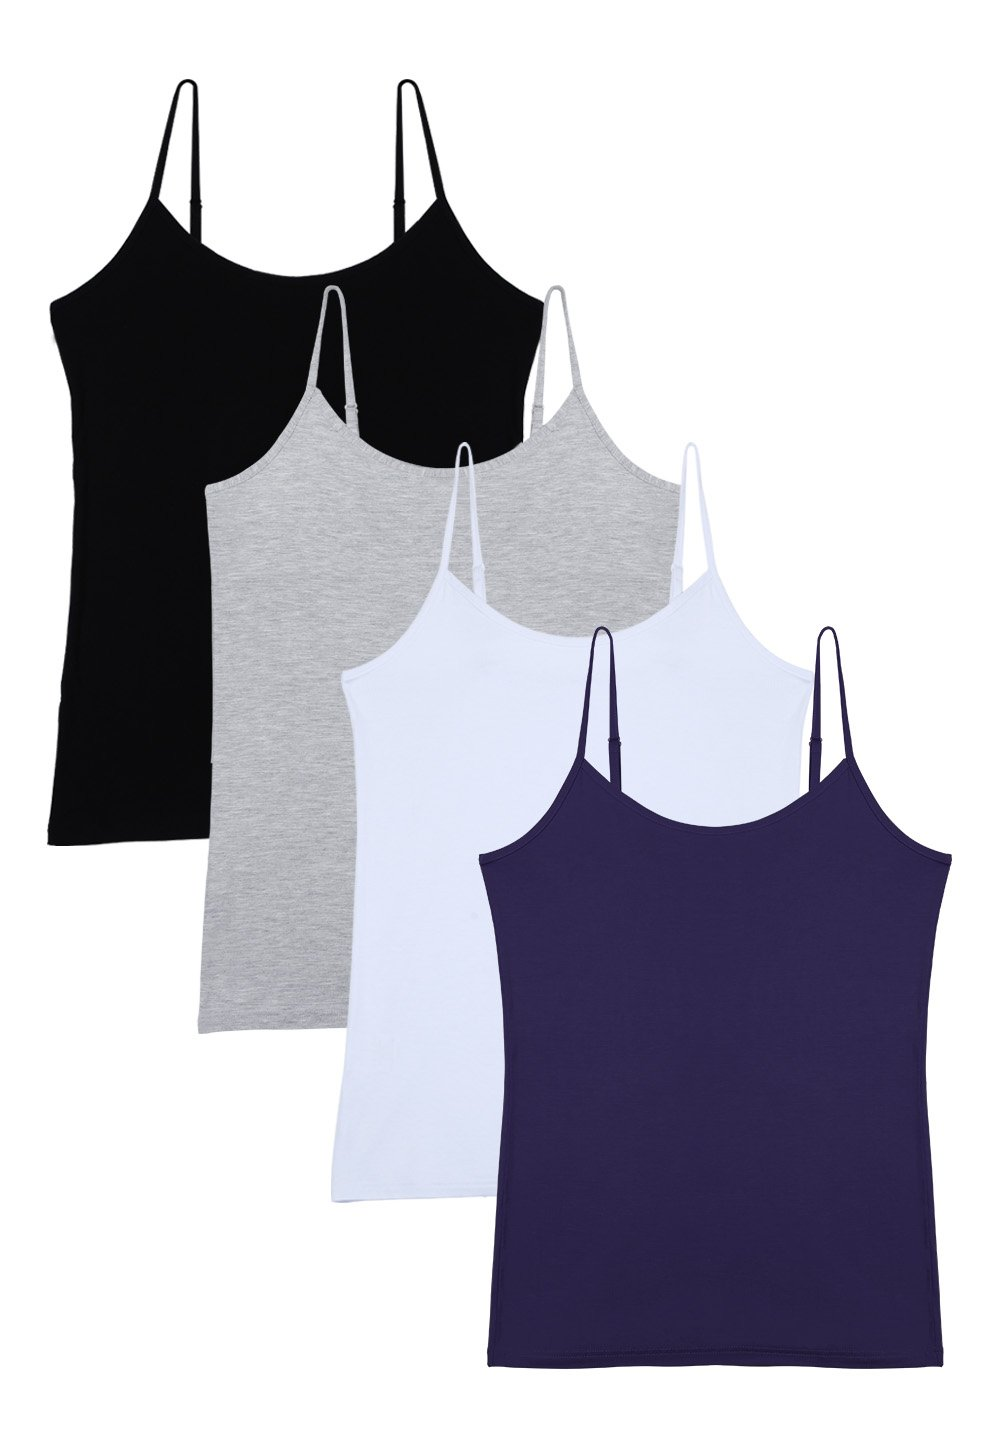 Vislivin Women's Basic Solid Camisole Adjustable Spaghetti Strap Tank Top Black/Gray/White/Dark Blue L